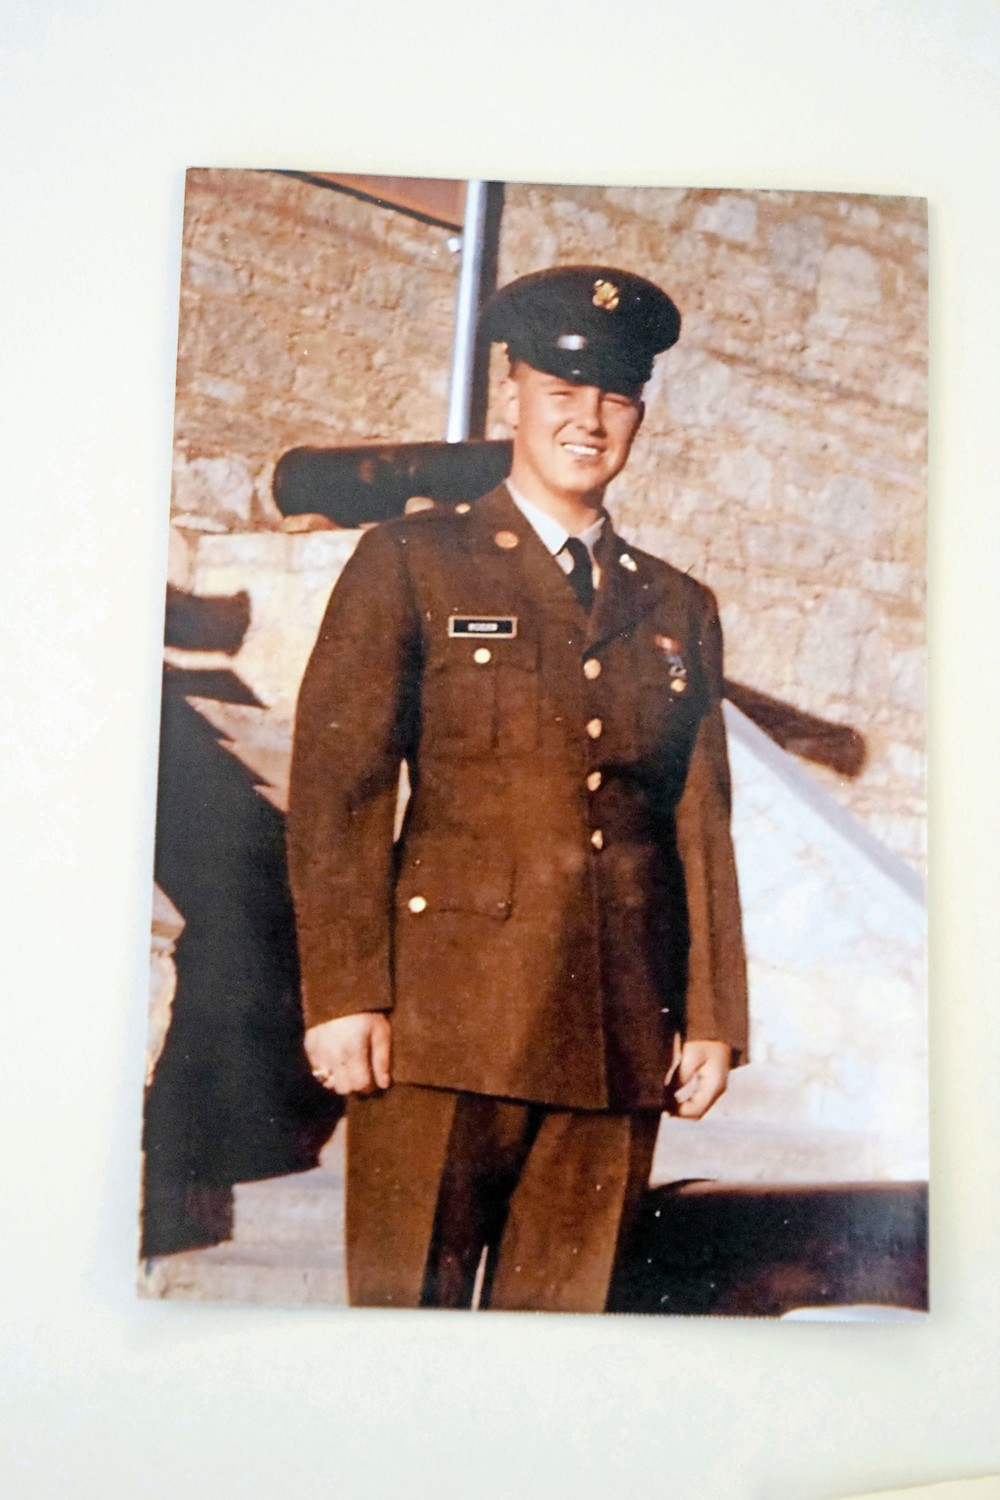 A Seaford native, Hoehn was drafted into the Army during the Vietnam War. He was deployed to Fort Sill in Oklahoma after completing eight weeks of basic training.